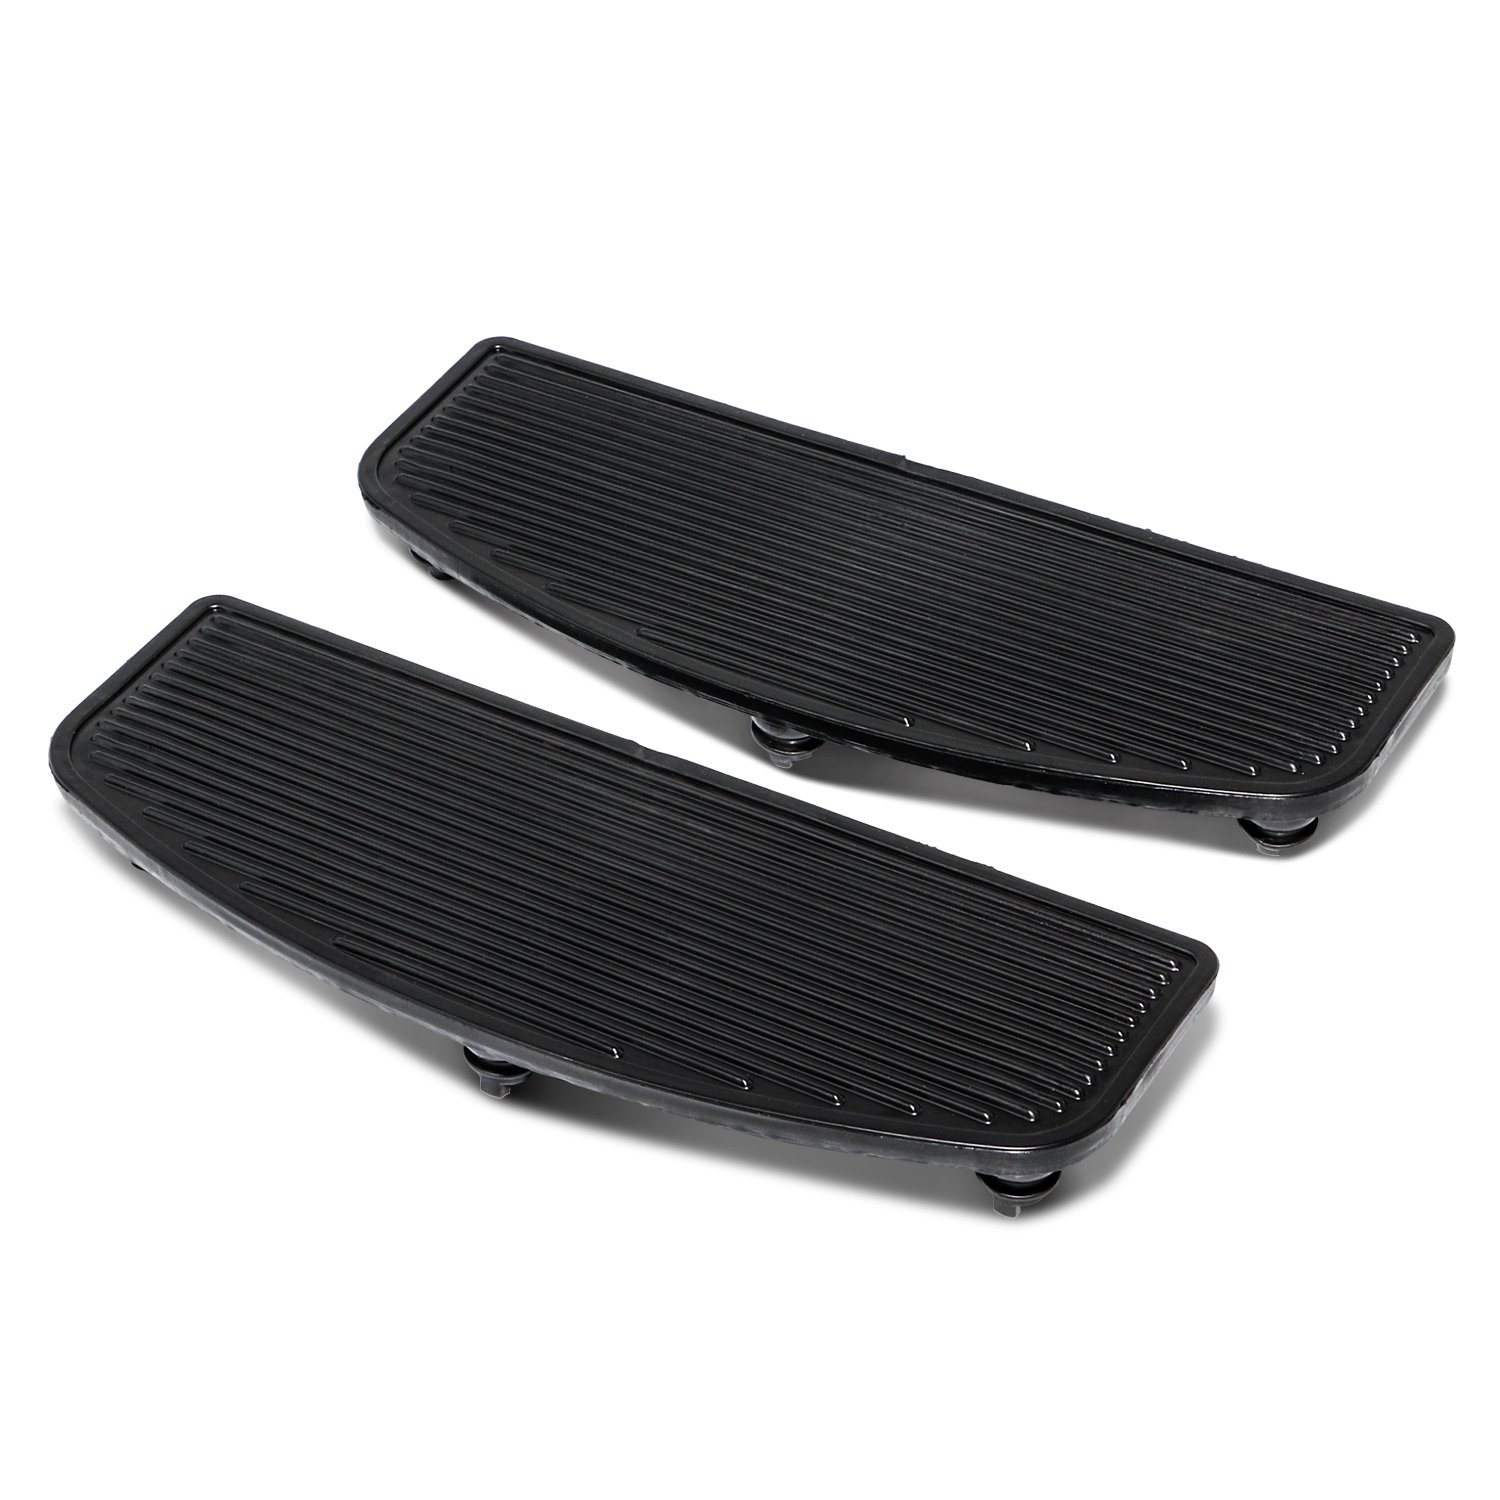 Senkauto Black Front Rubber Rider Insert Floorboard Footboards Foot Peg Boards For Harley Touring Electra Road Kind by Senkauto (Image #4)